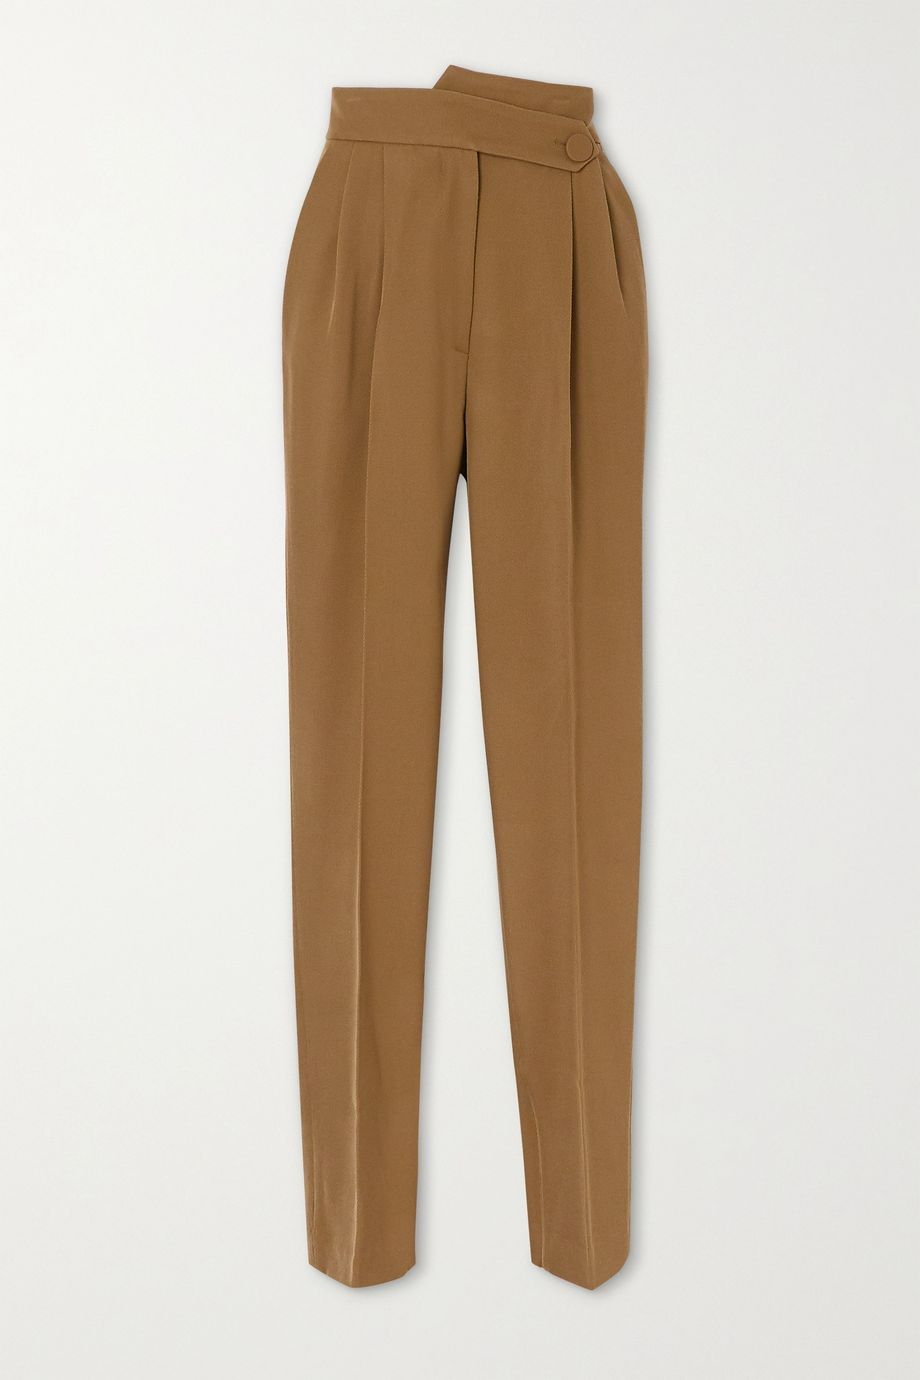 Petar Petrov Herve pleated wool-twill tapered pants